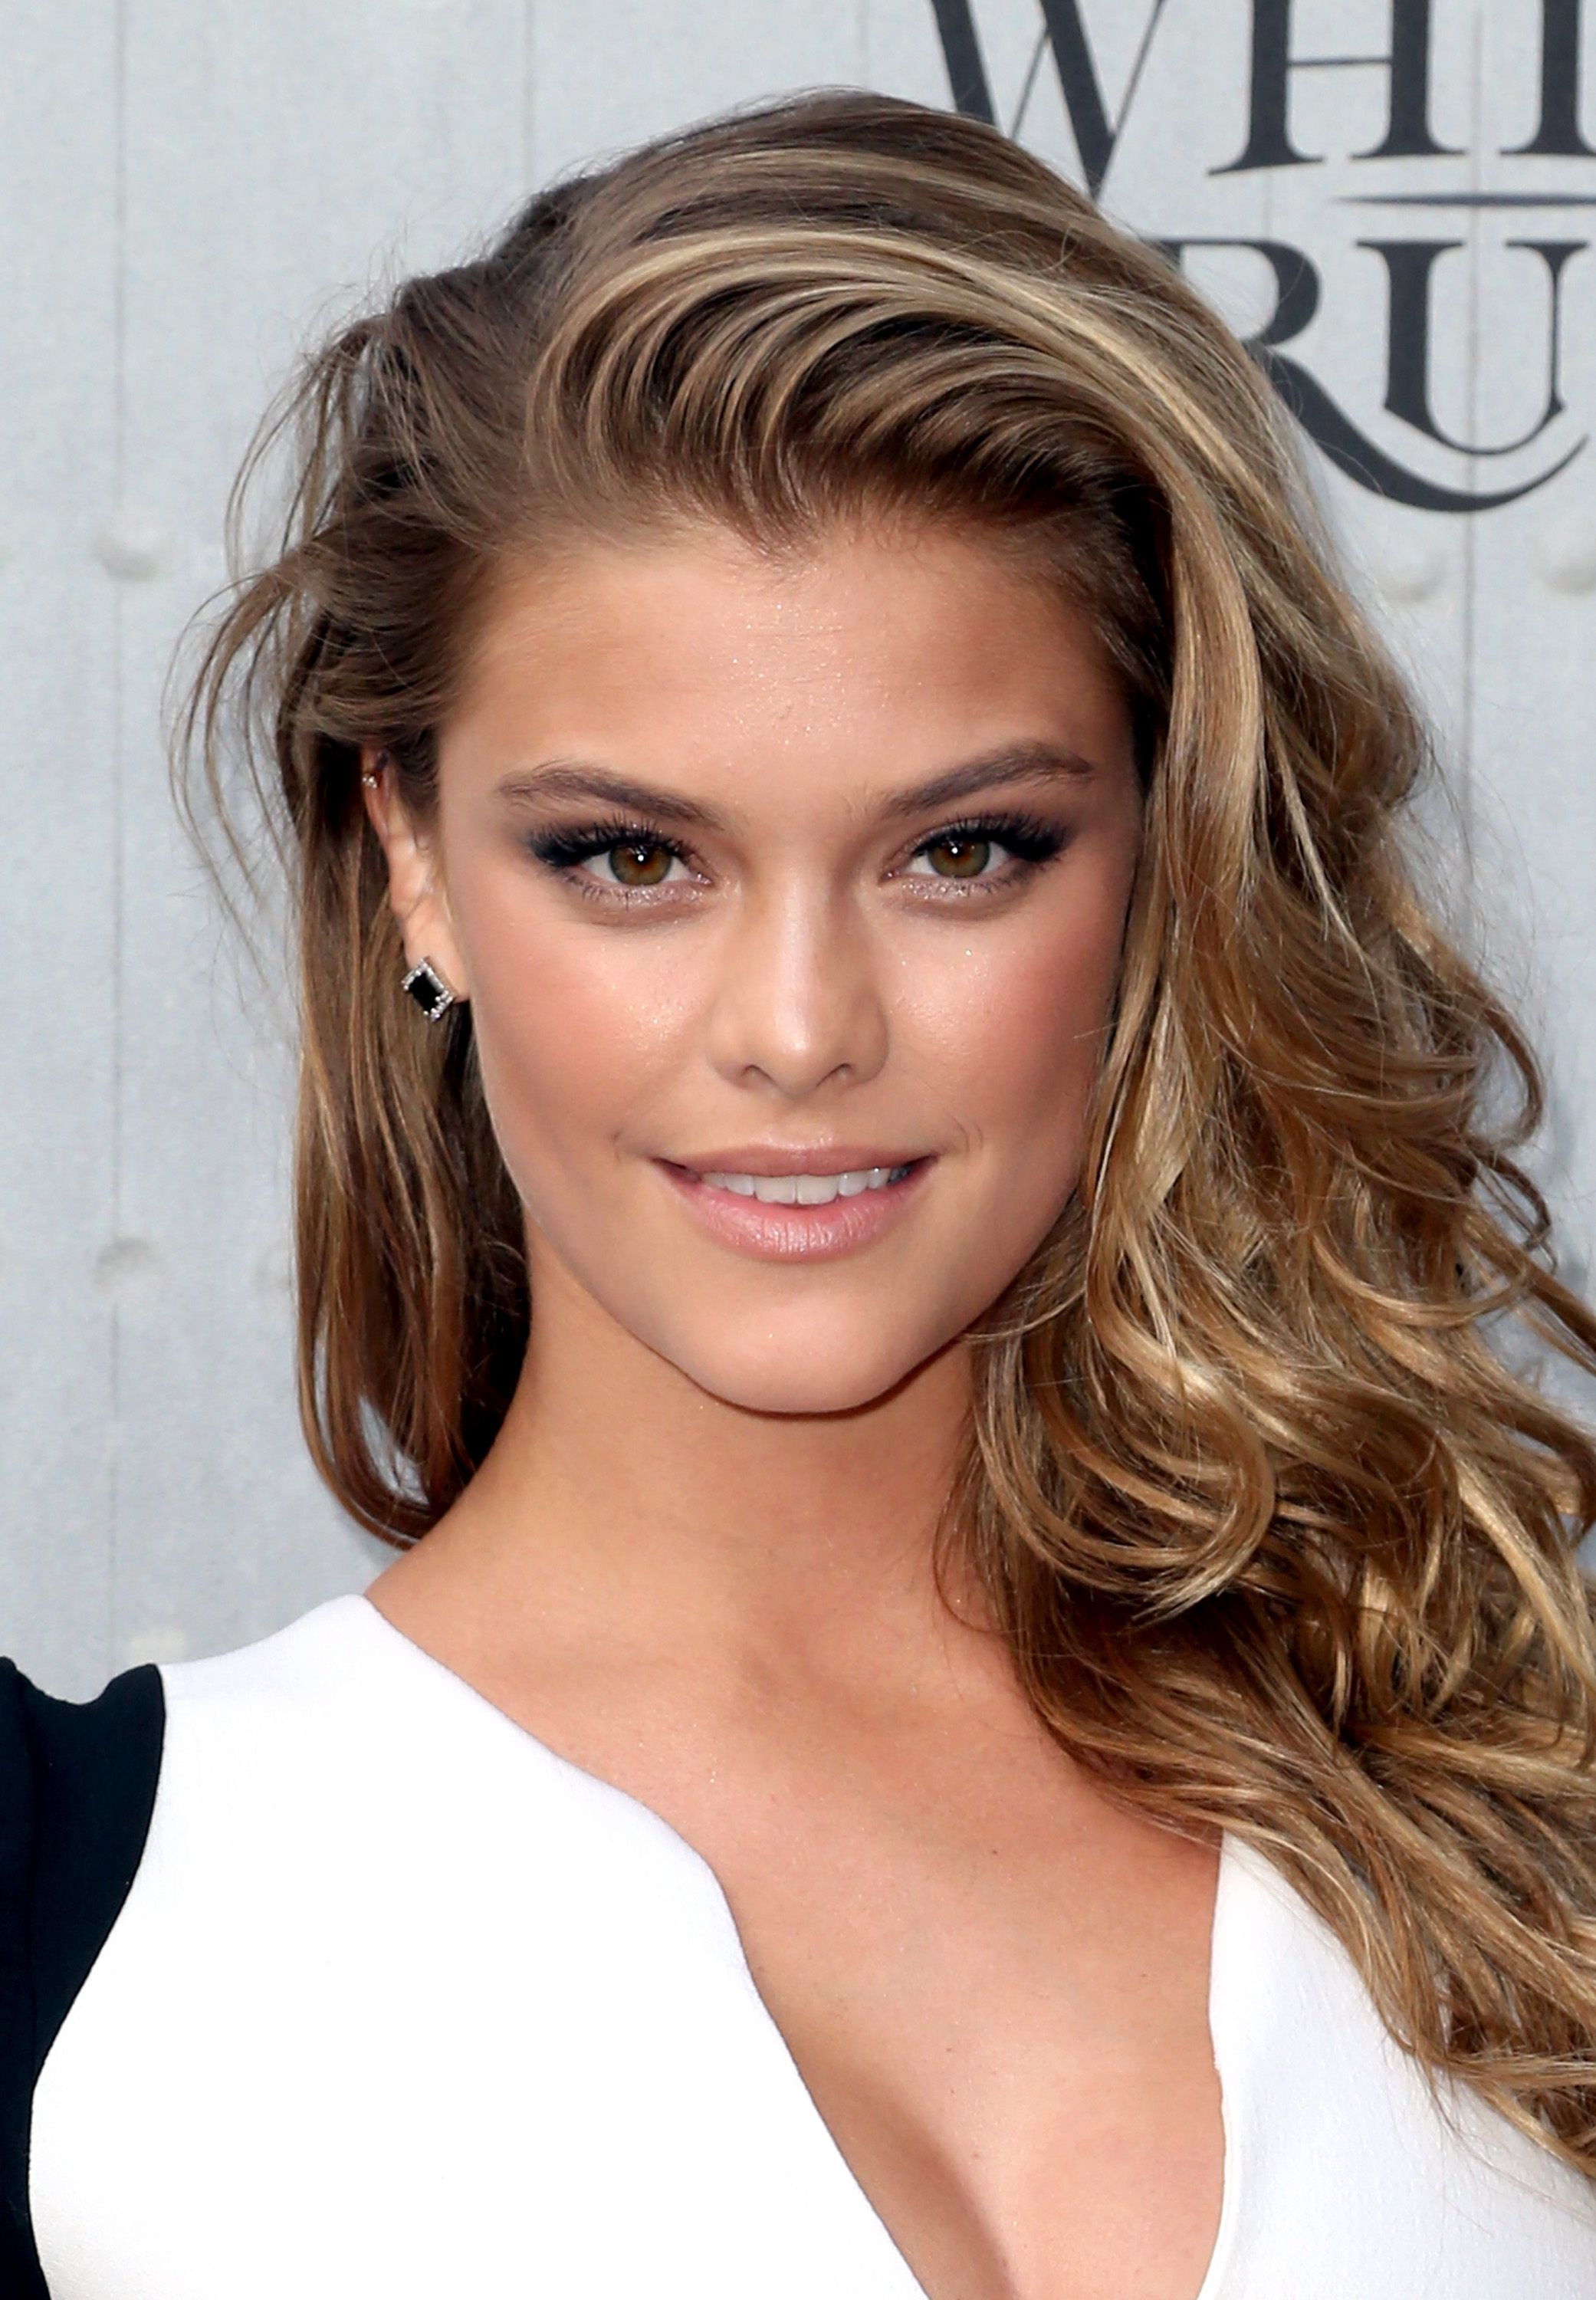 Nina Agdal model - leonardo dicaprio girlfriend